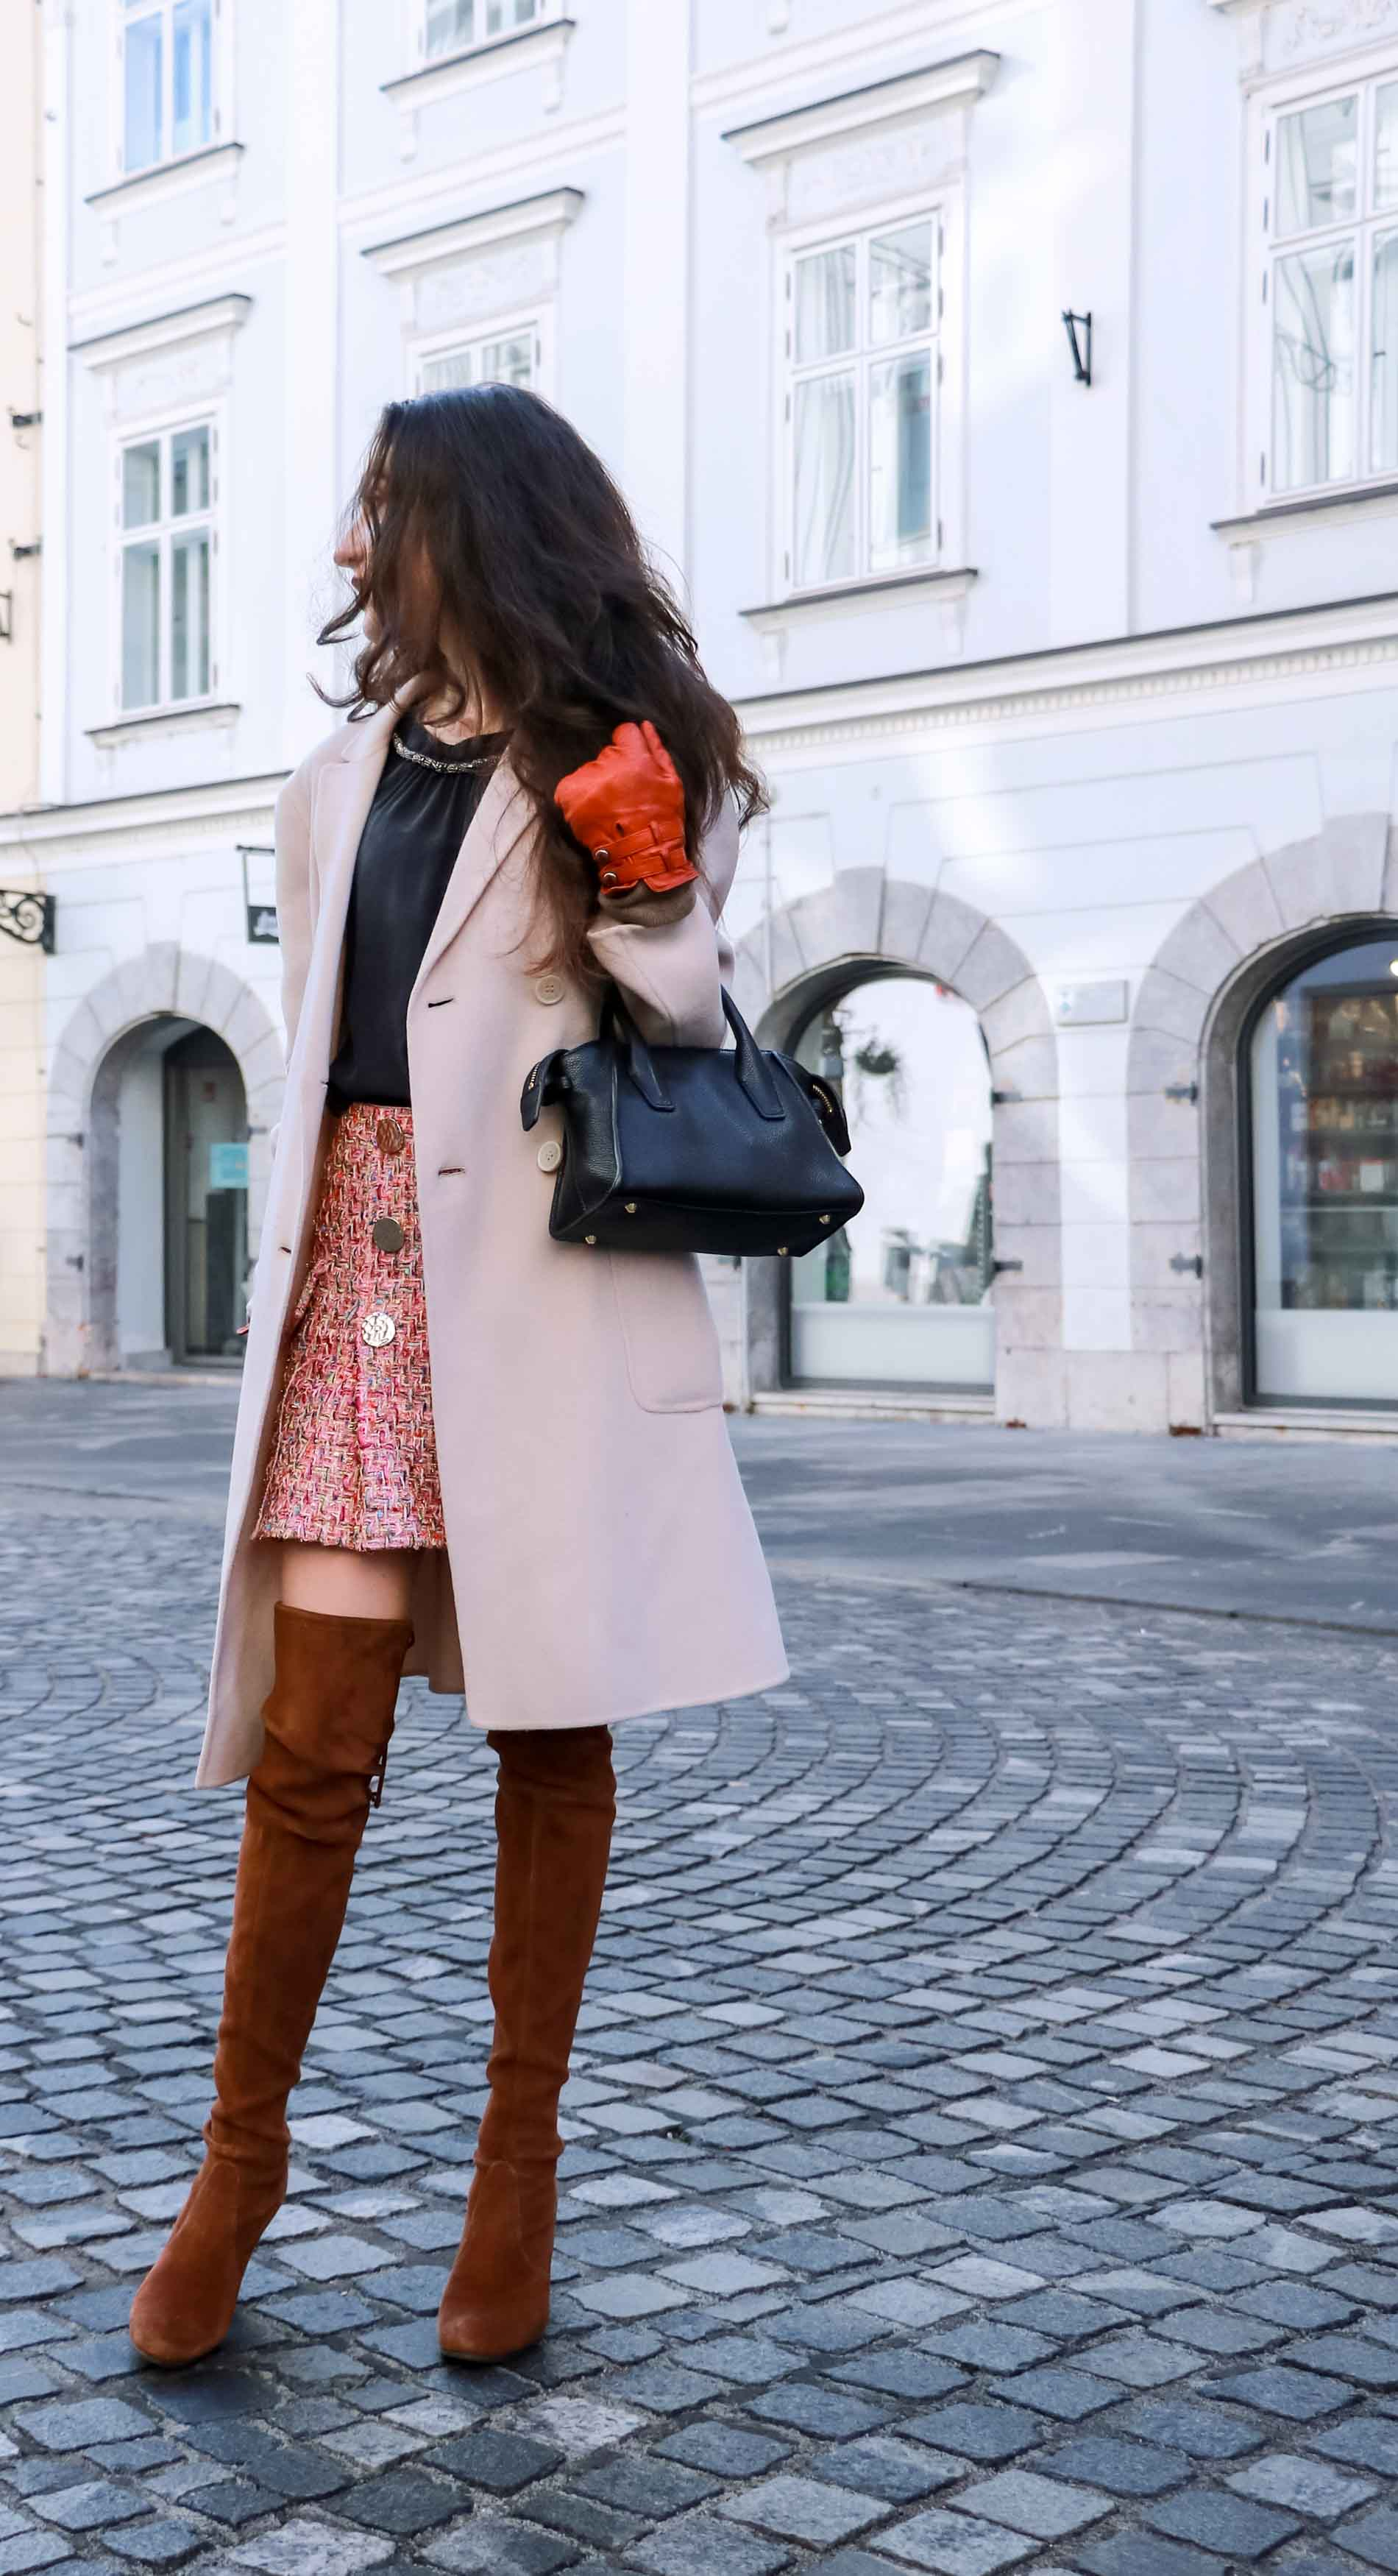 Fashion Blogger Veronika Lipar of Brunette from Wall Street wearing Storets pink tweed mini skirt, double breasted ivory coat from Weekend Maxmara, black silk blouse from Juicy couture, small black top handle bag, Stuart Weitzman brown over the knee boots this winter